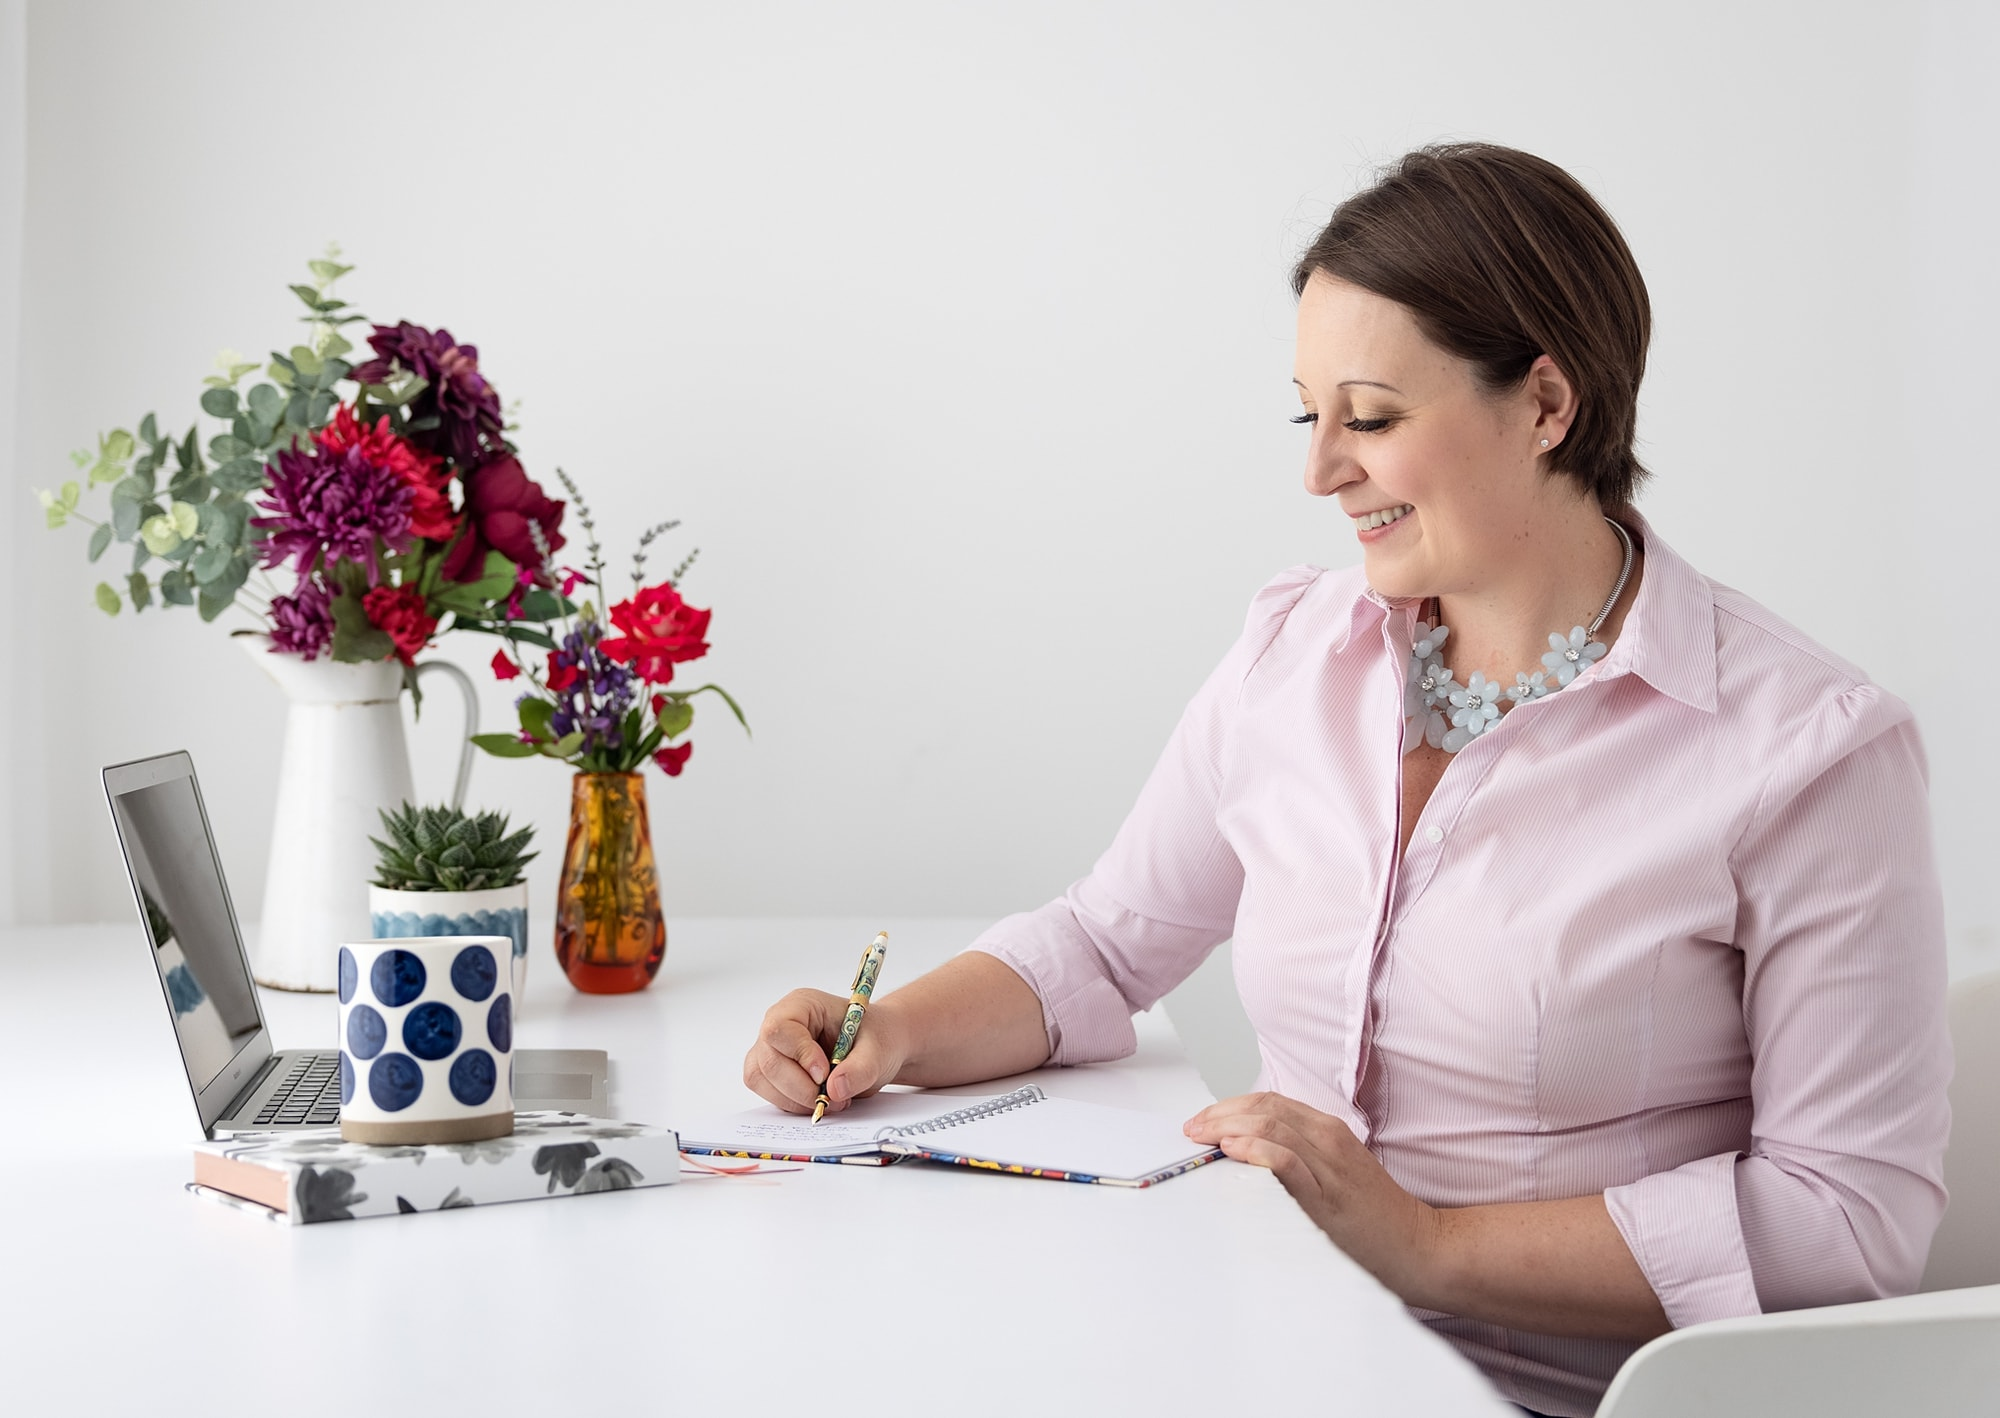 Woman in pink shirt sits at desk writing notes during her Personal Branding Photo shoot in Suffolk